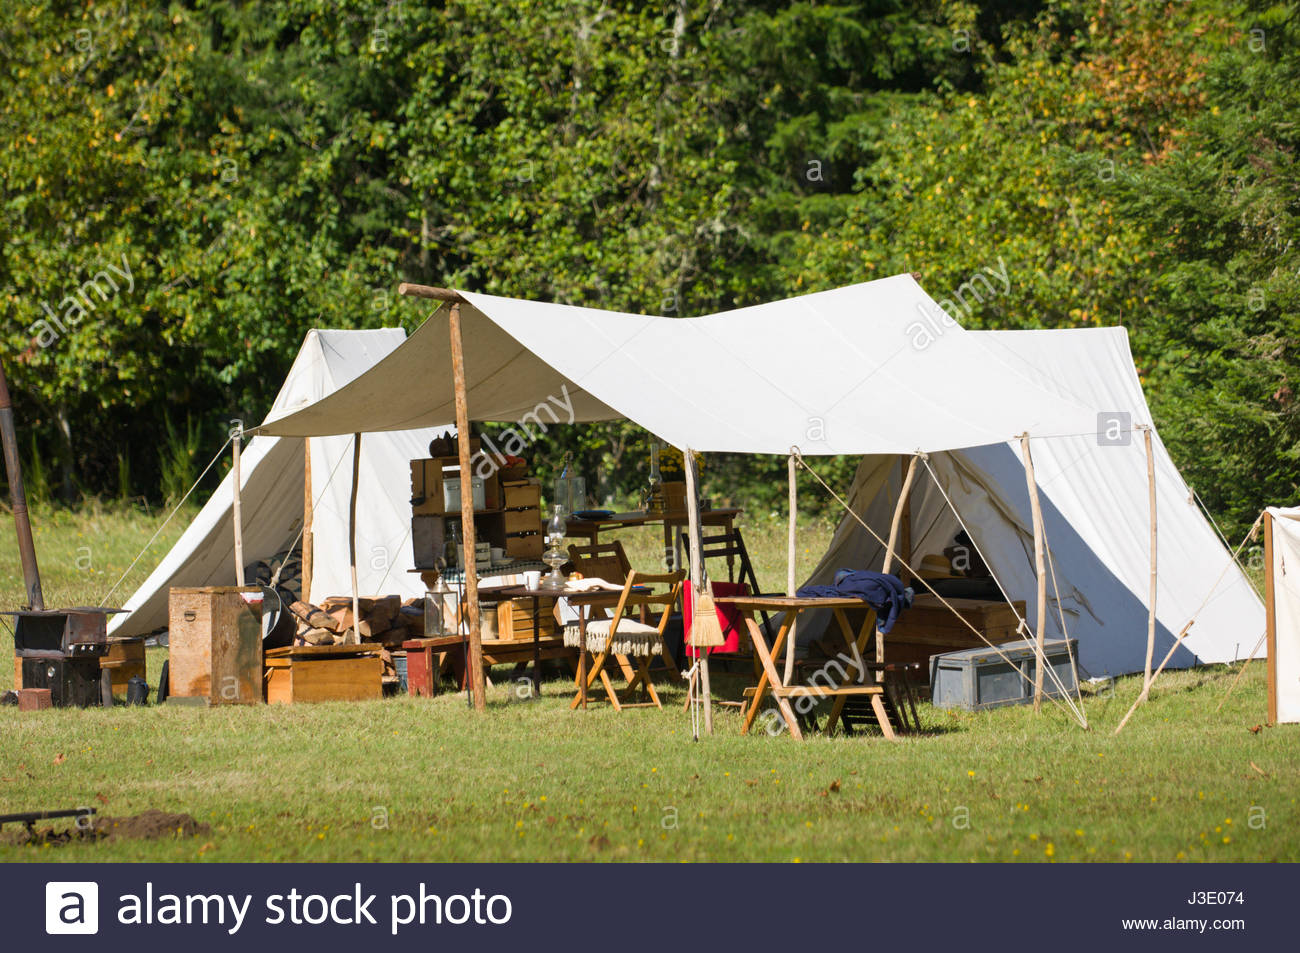 Bettingen camping equipment roulette betting strategy 1-3-3